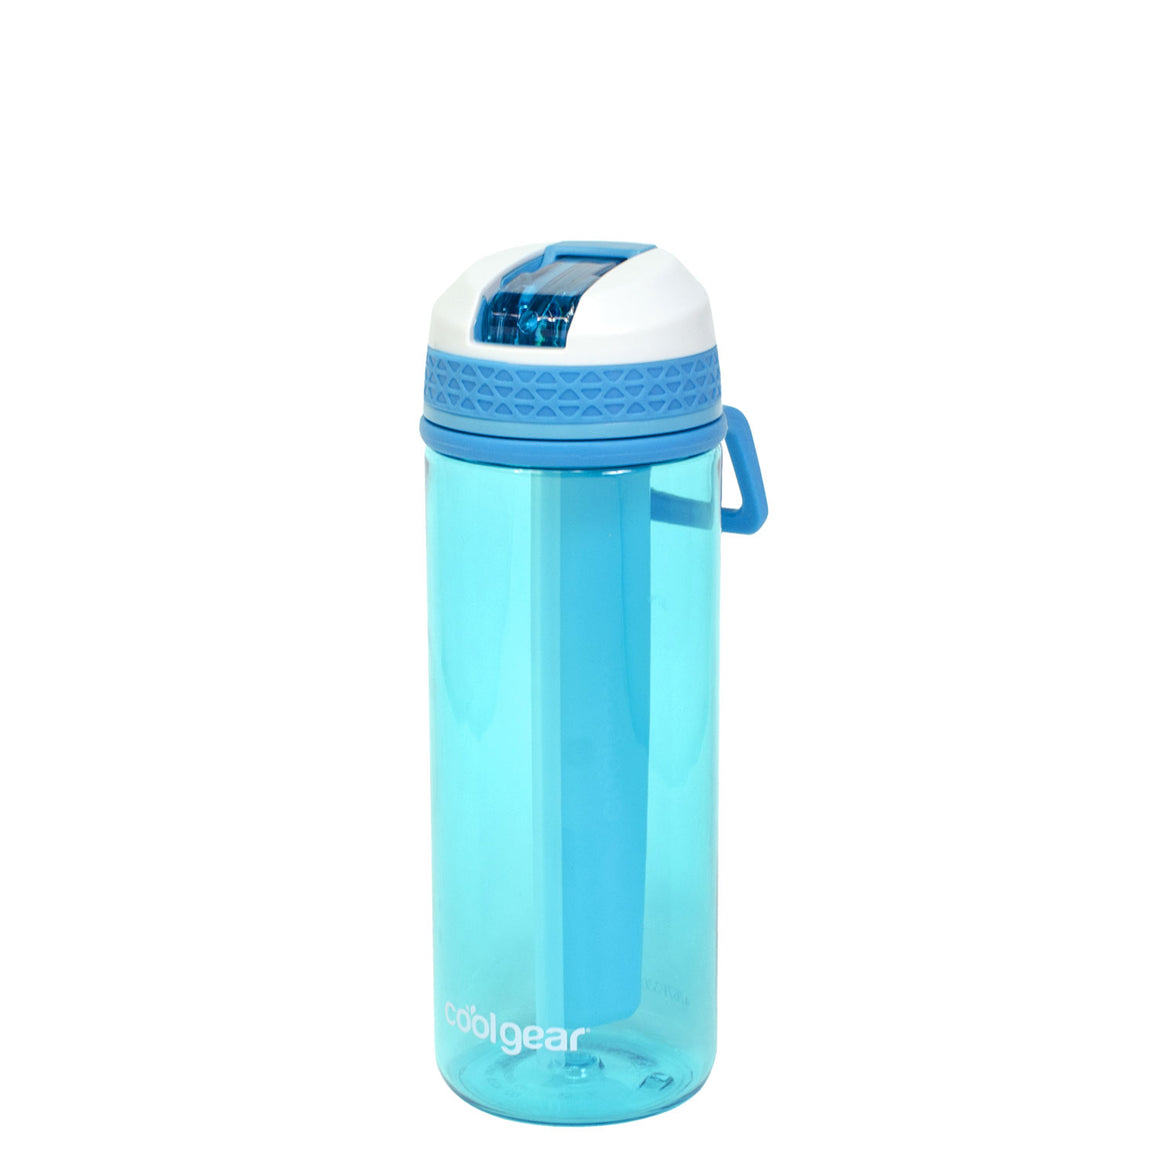 Lime Green System 24 Oz Water Bottle at Cool Gear Water Bottles